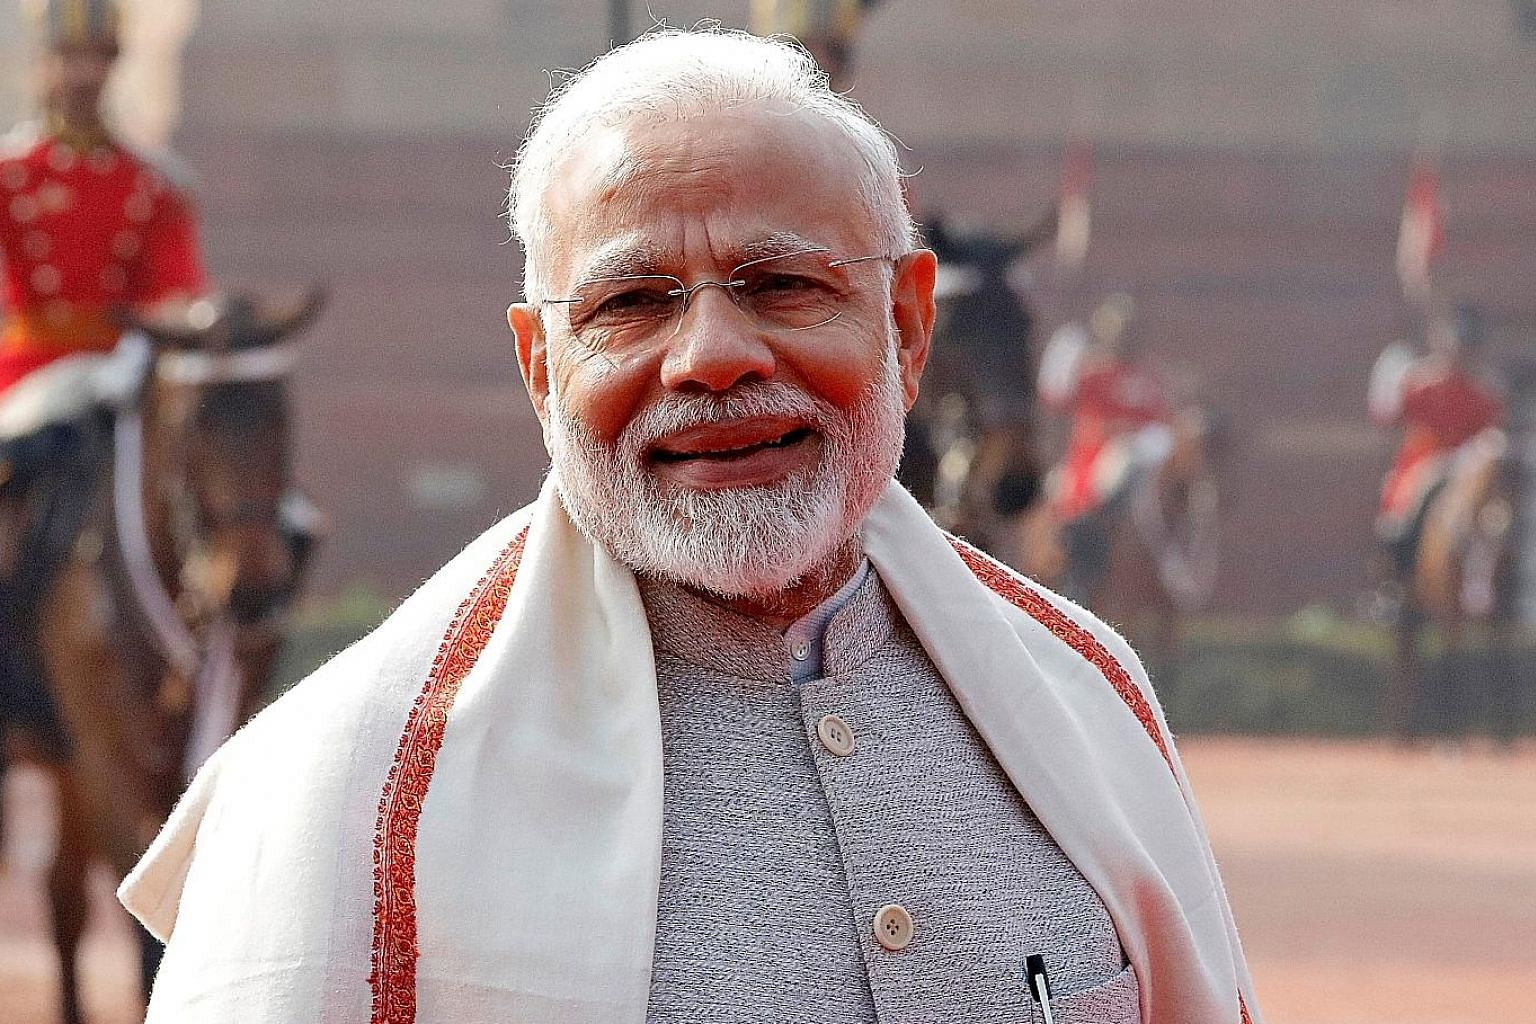 Indian Prime Minister Narendra Modi has succeeded in reconfiguring the psyche of voters even as he has failed to enhance their real-world opportunities, says the writer.